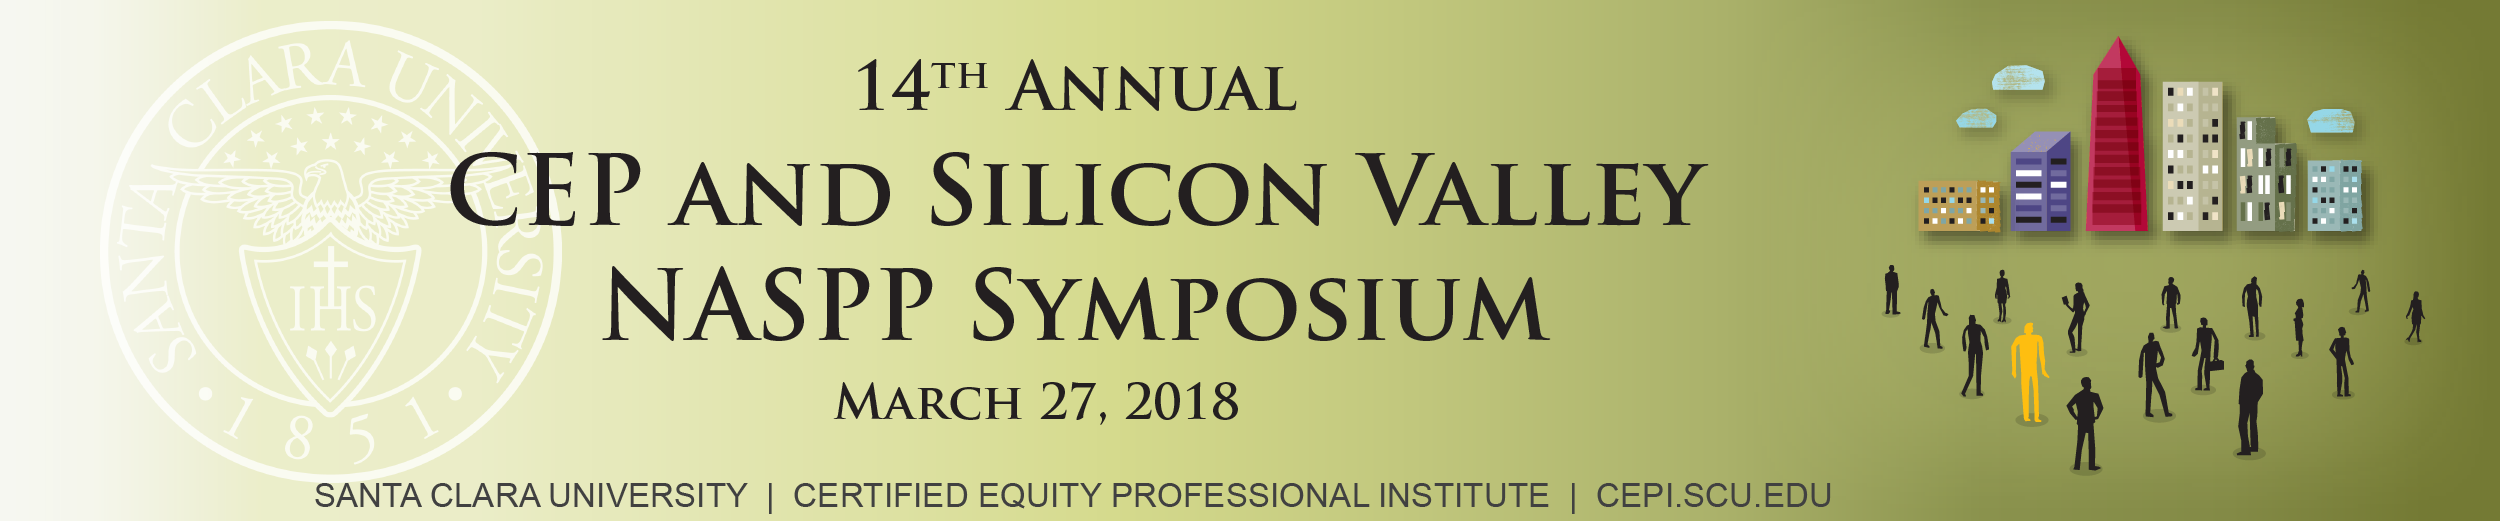 14th Annual CEP and Silicon Valley NASPP Symposium